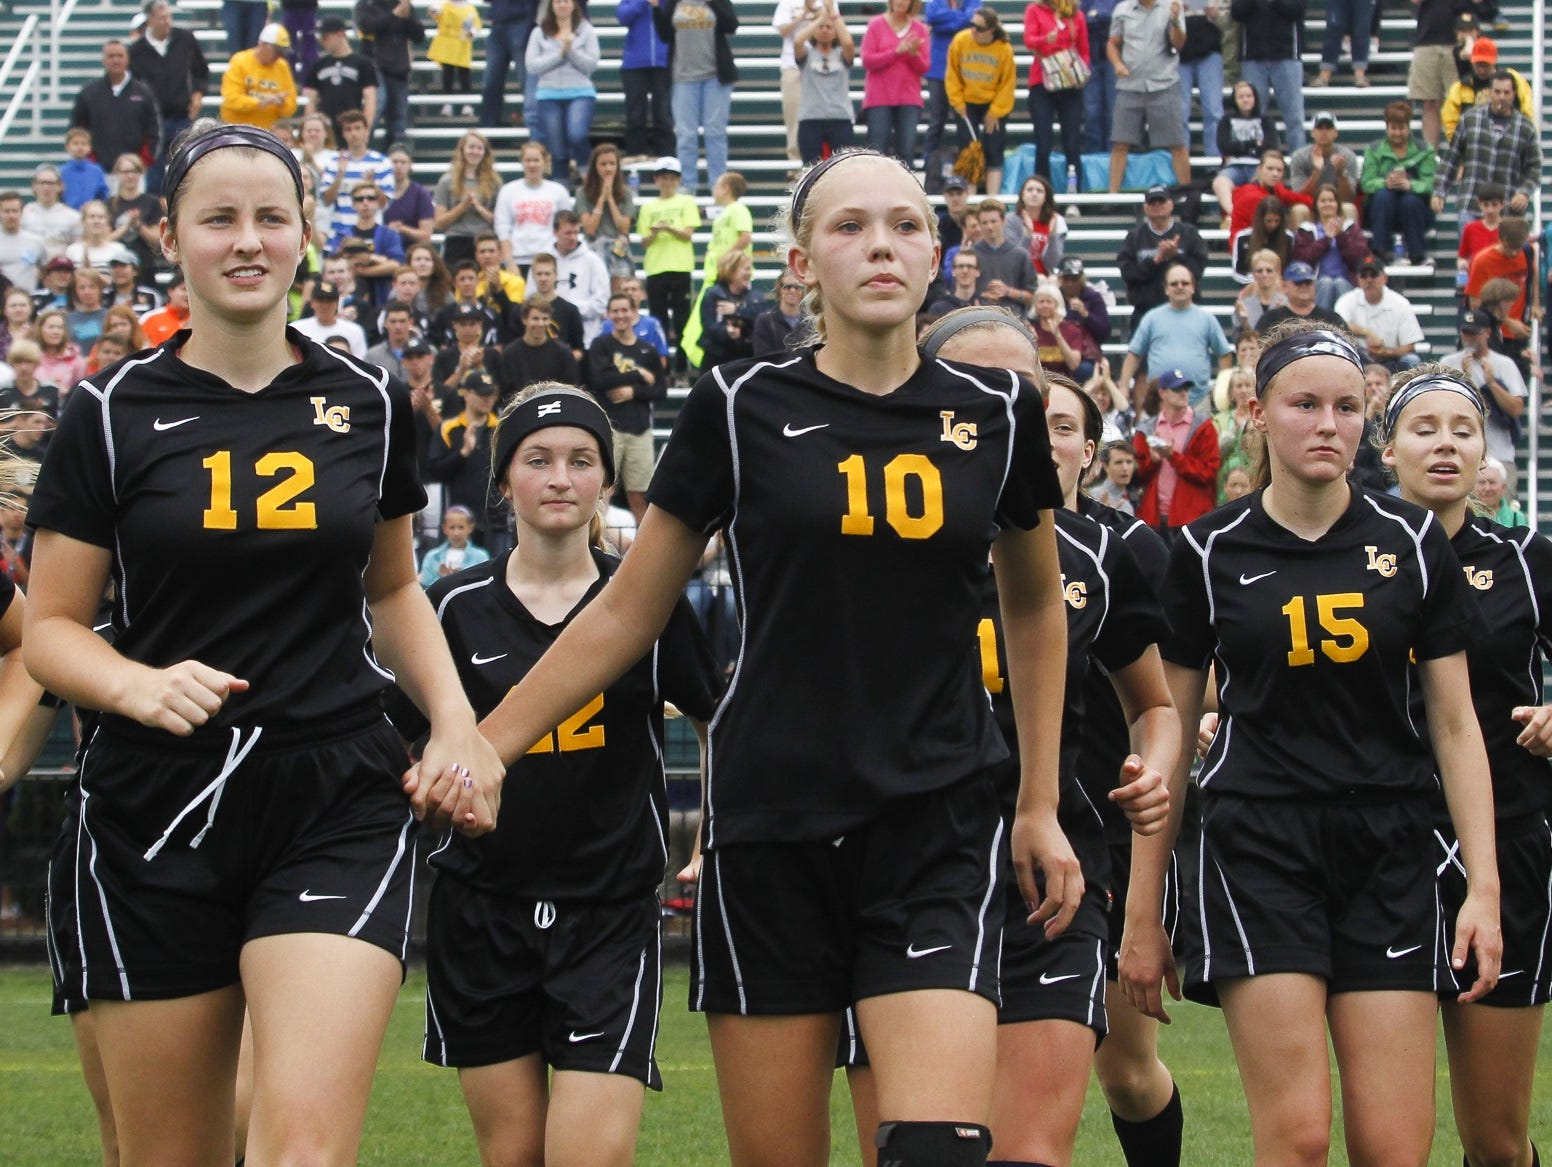 Members of the Lansing Christian soccer team walk off the field after losing to Grandville Calvin 2-1 in the Div. 4 state final last season. The No. 1-ranked Pilgrims are looking to get back to the state tournament on Friday.